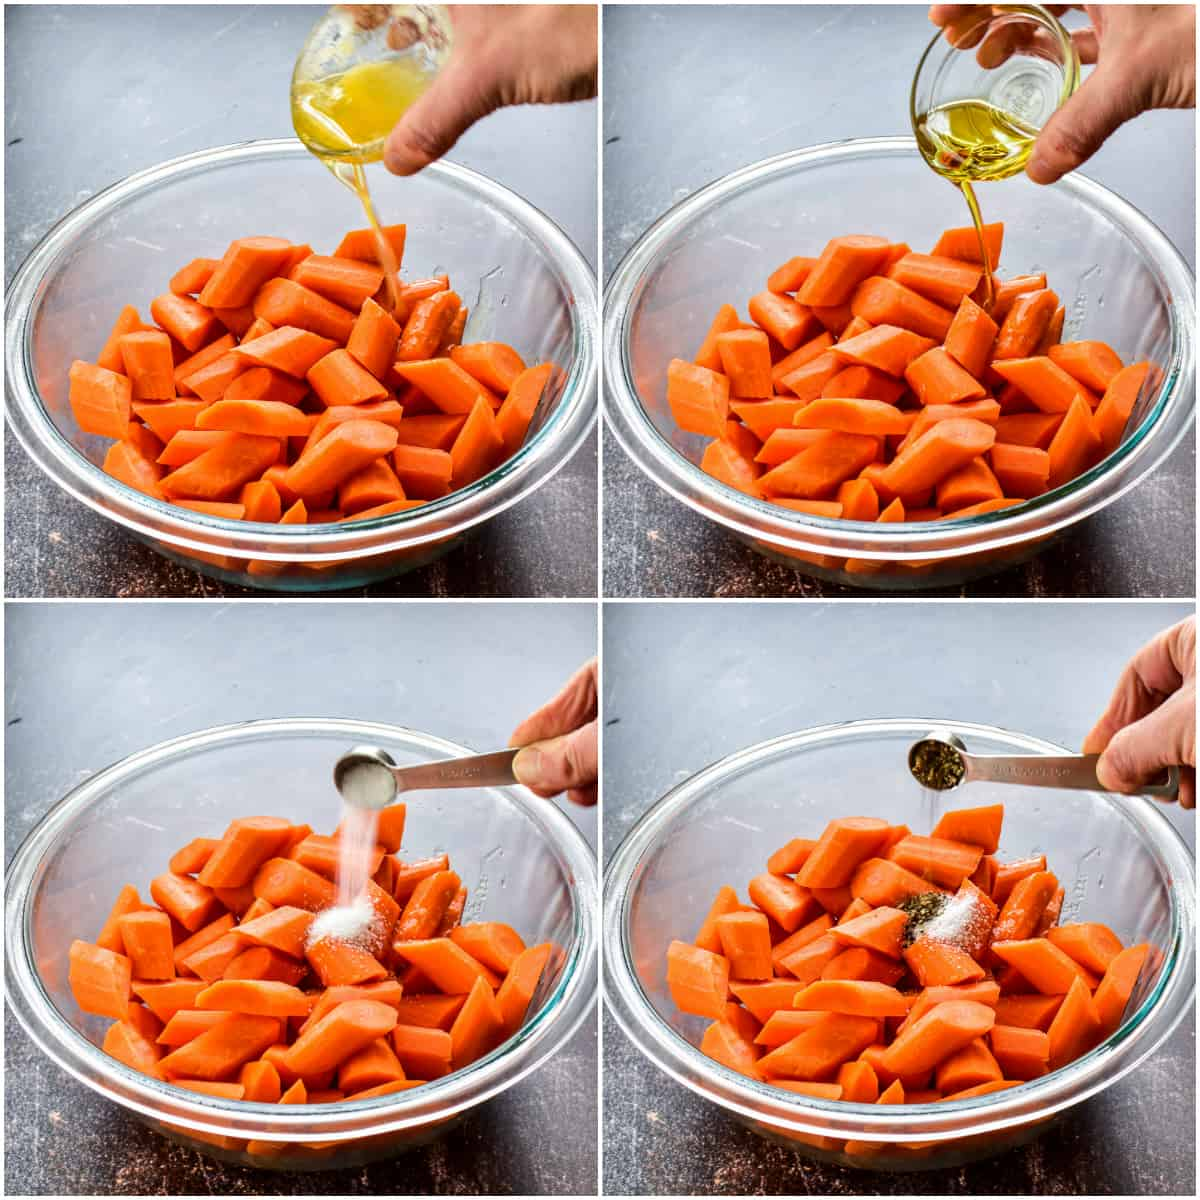 Step by step photos of Roasted Carrots prep